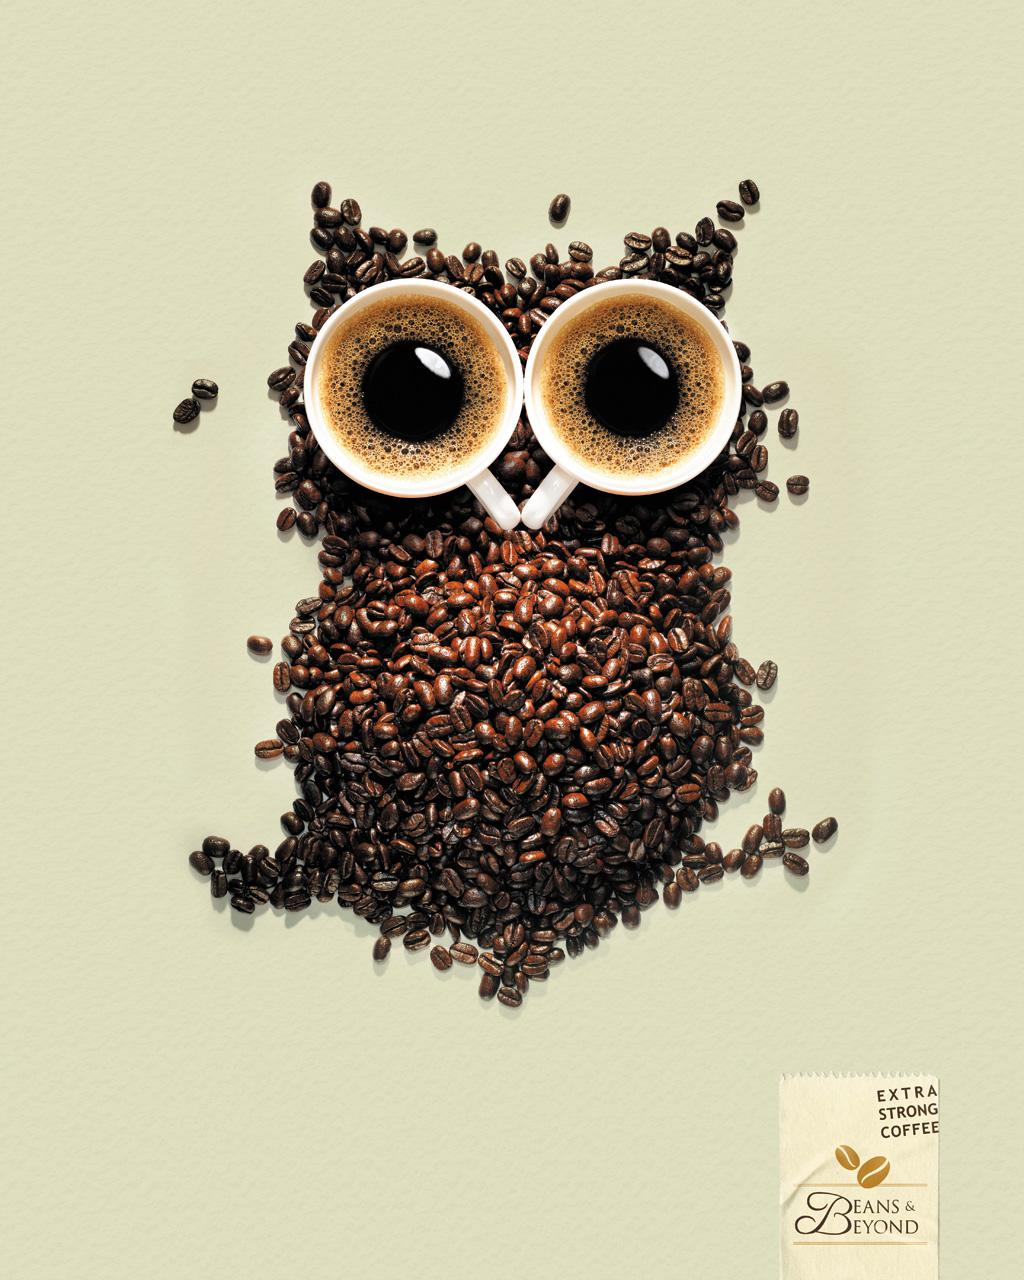 Beans & Beyond Print Ad -  Extra Strong Coffee